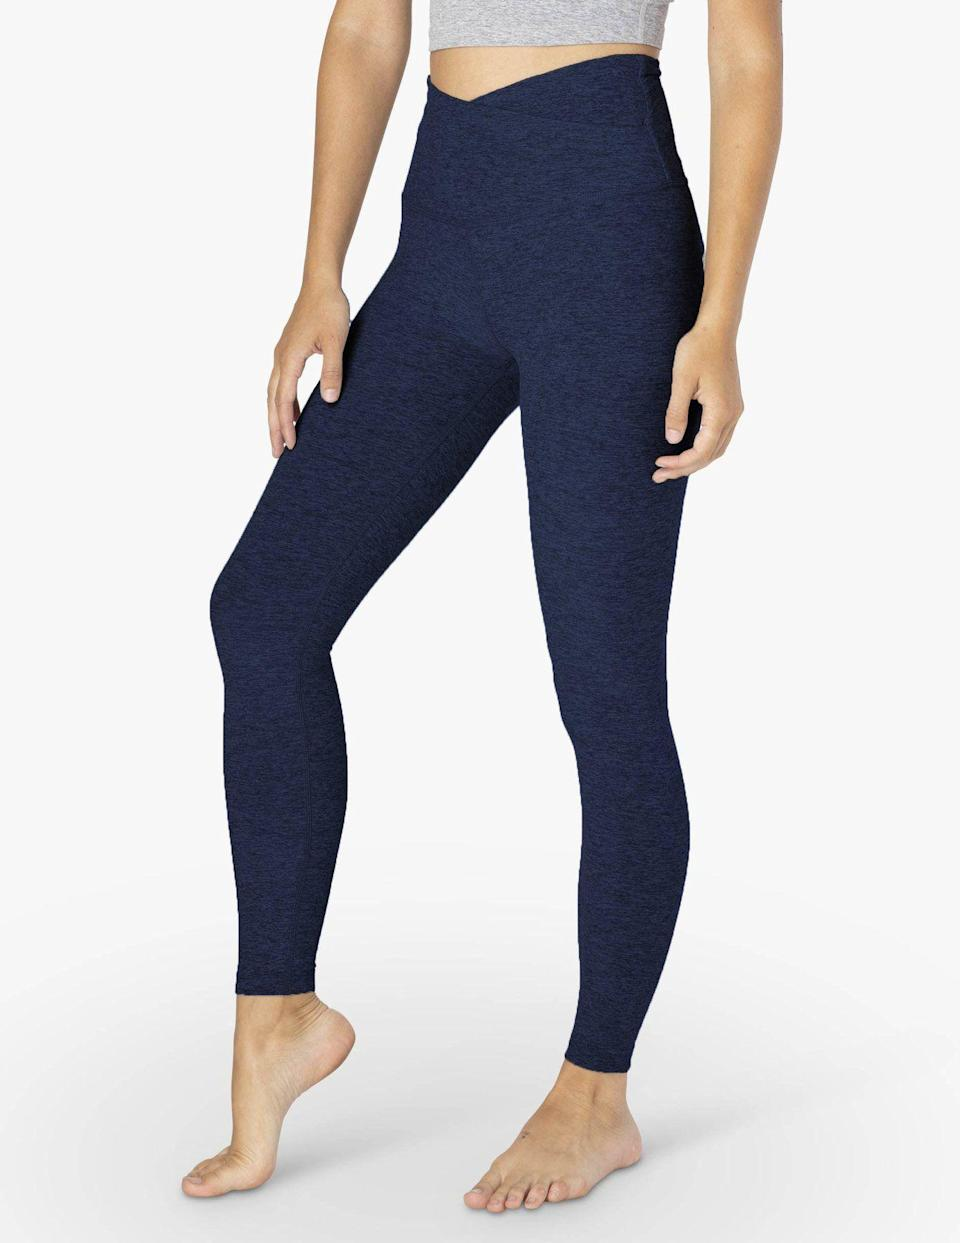 "<p>beyondyoga.com</p><p><strong>$99.00</strong></p><p><a href=""https://beyondyoga.com/collections/best-selling-leggings/products/spacedye-at-your-leisure-high-waisted-midi-legging-nocturnal-navy-sd3463?variant=32850843598947"" rel=""nofollow noopener"" target=""_blank"" data-ylk=""slk:Shop Now"" class=""link rapid-noclick-resp"">Shop Now</a></p>"